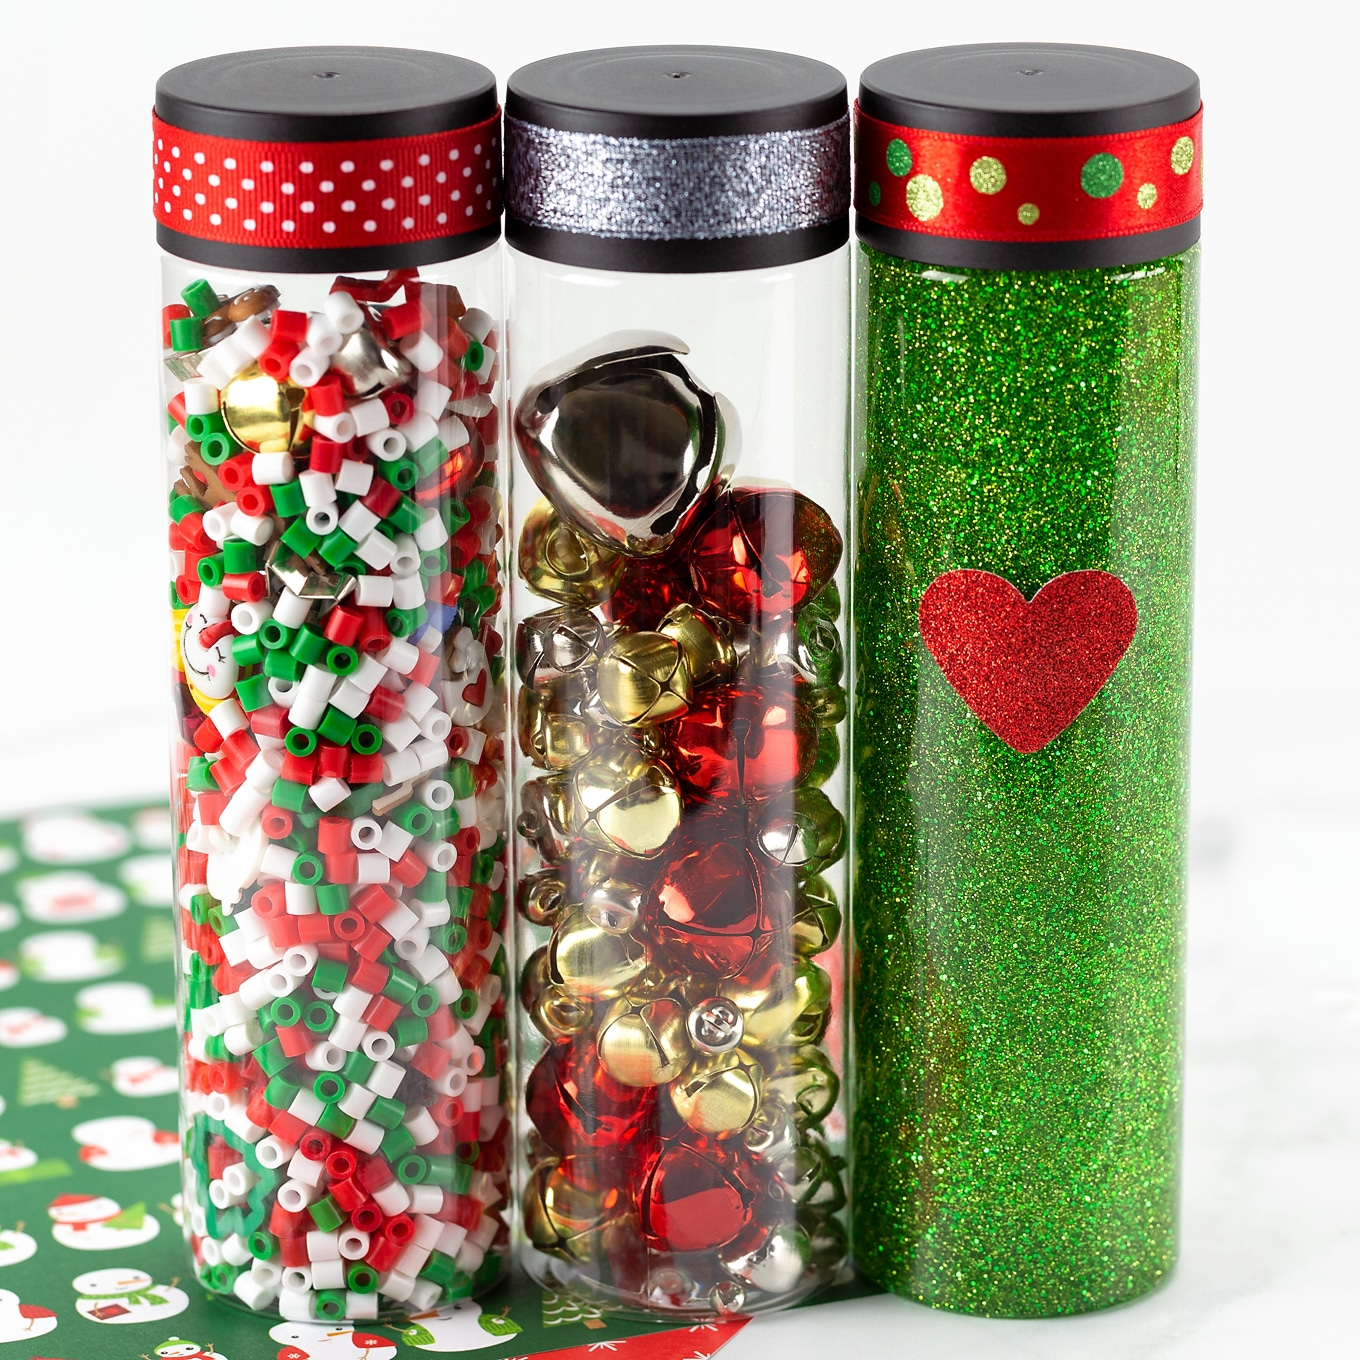 Christmas Sensory Bottles Fireflies And Mud Pies